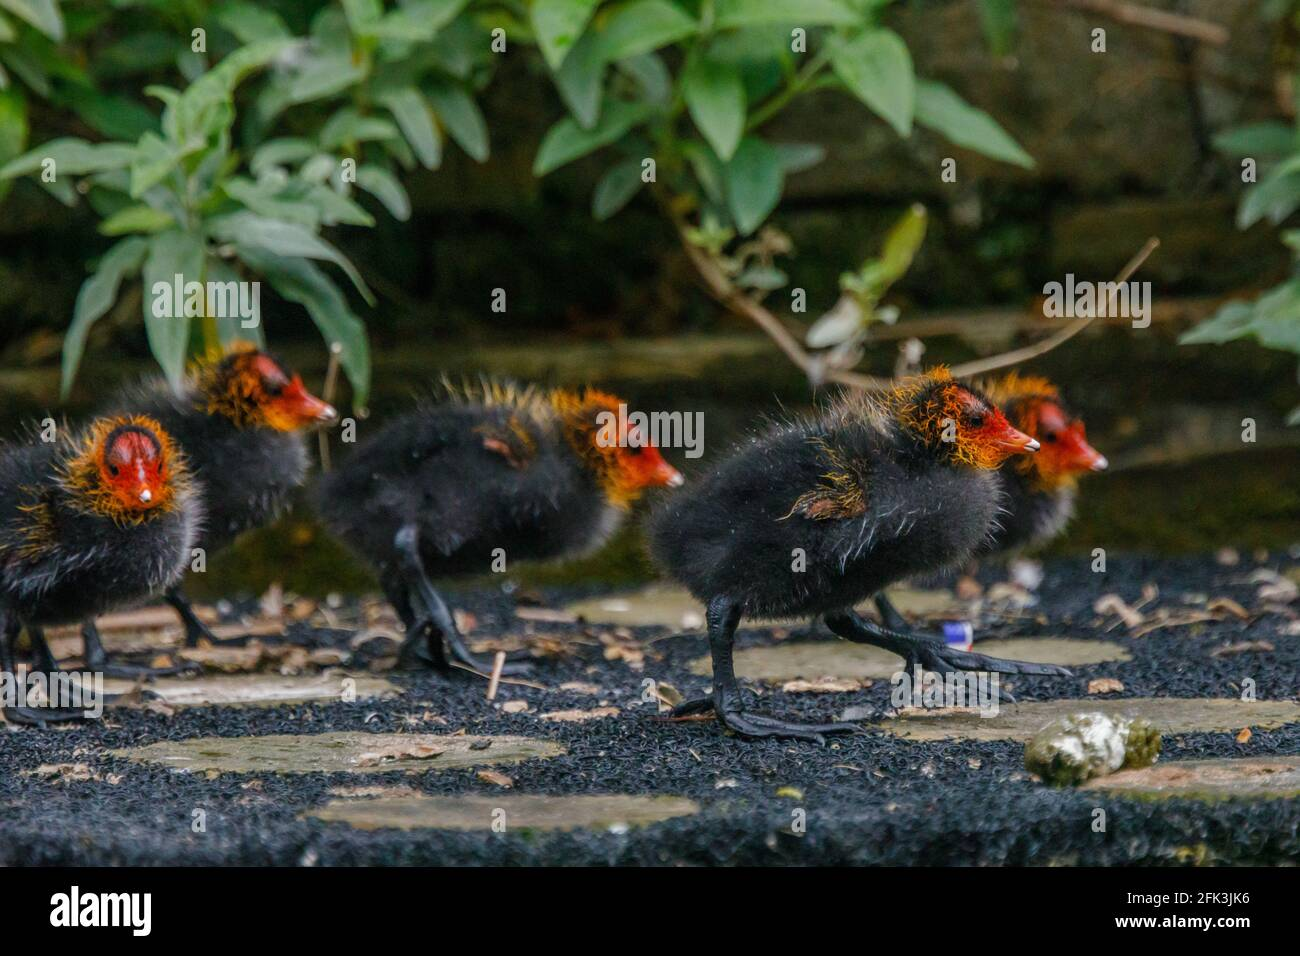 Wapping Canal, London, UK. 28th April 2021. Coot baby cooties on an urban canal in Wapping, East London.  Amanda Rose/Alamy Stock Photo